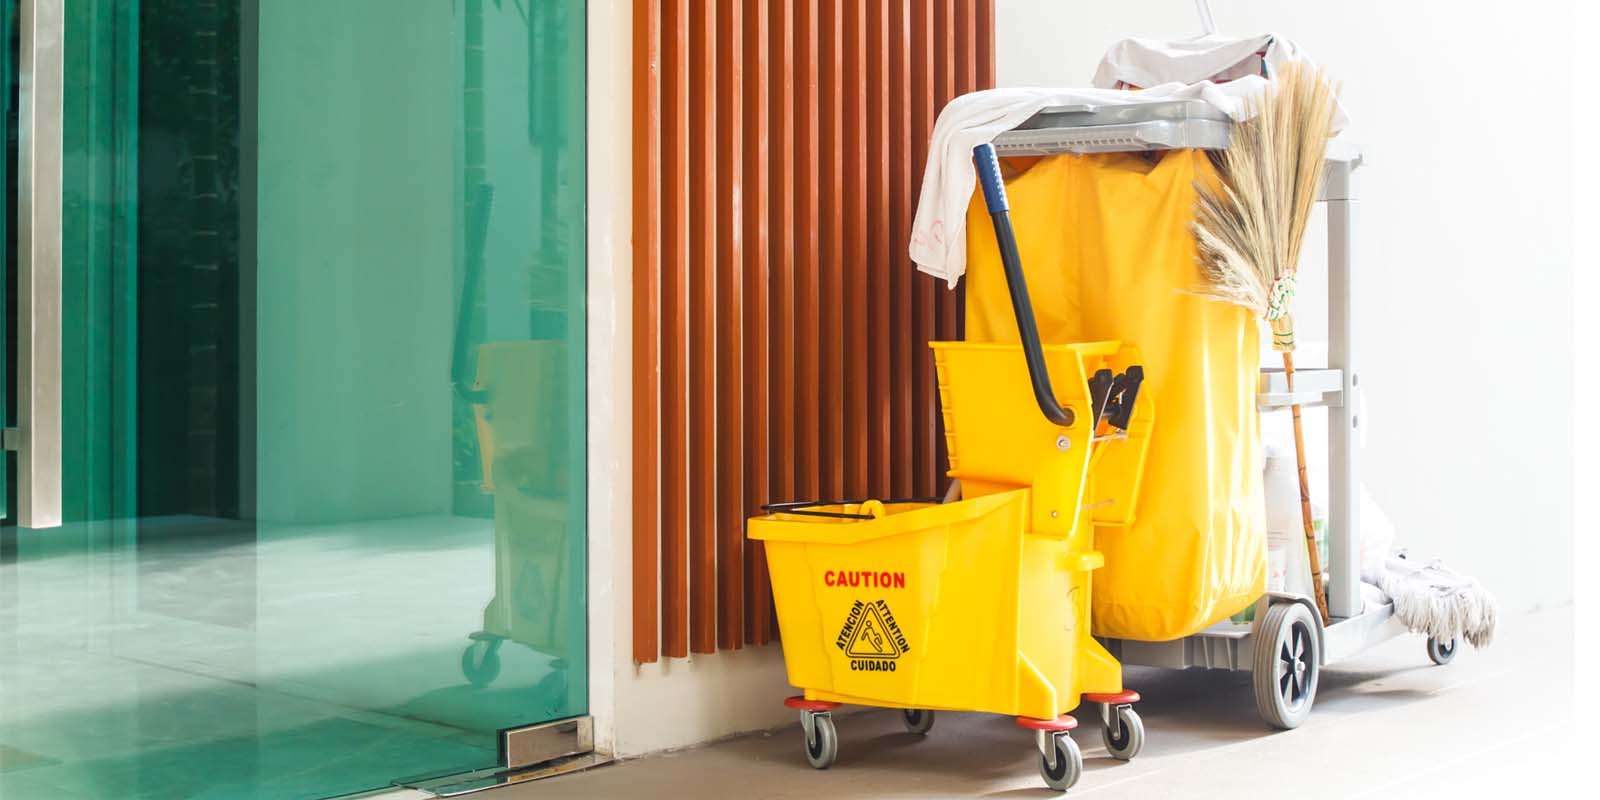 Residential community cleaning services in Los Angeles